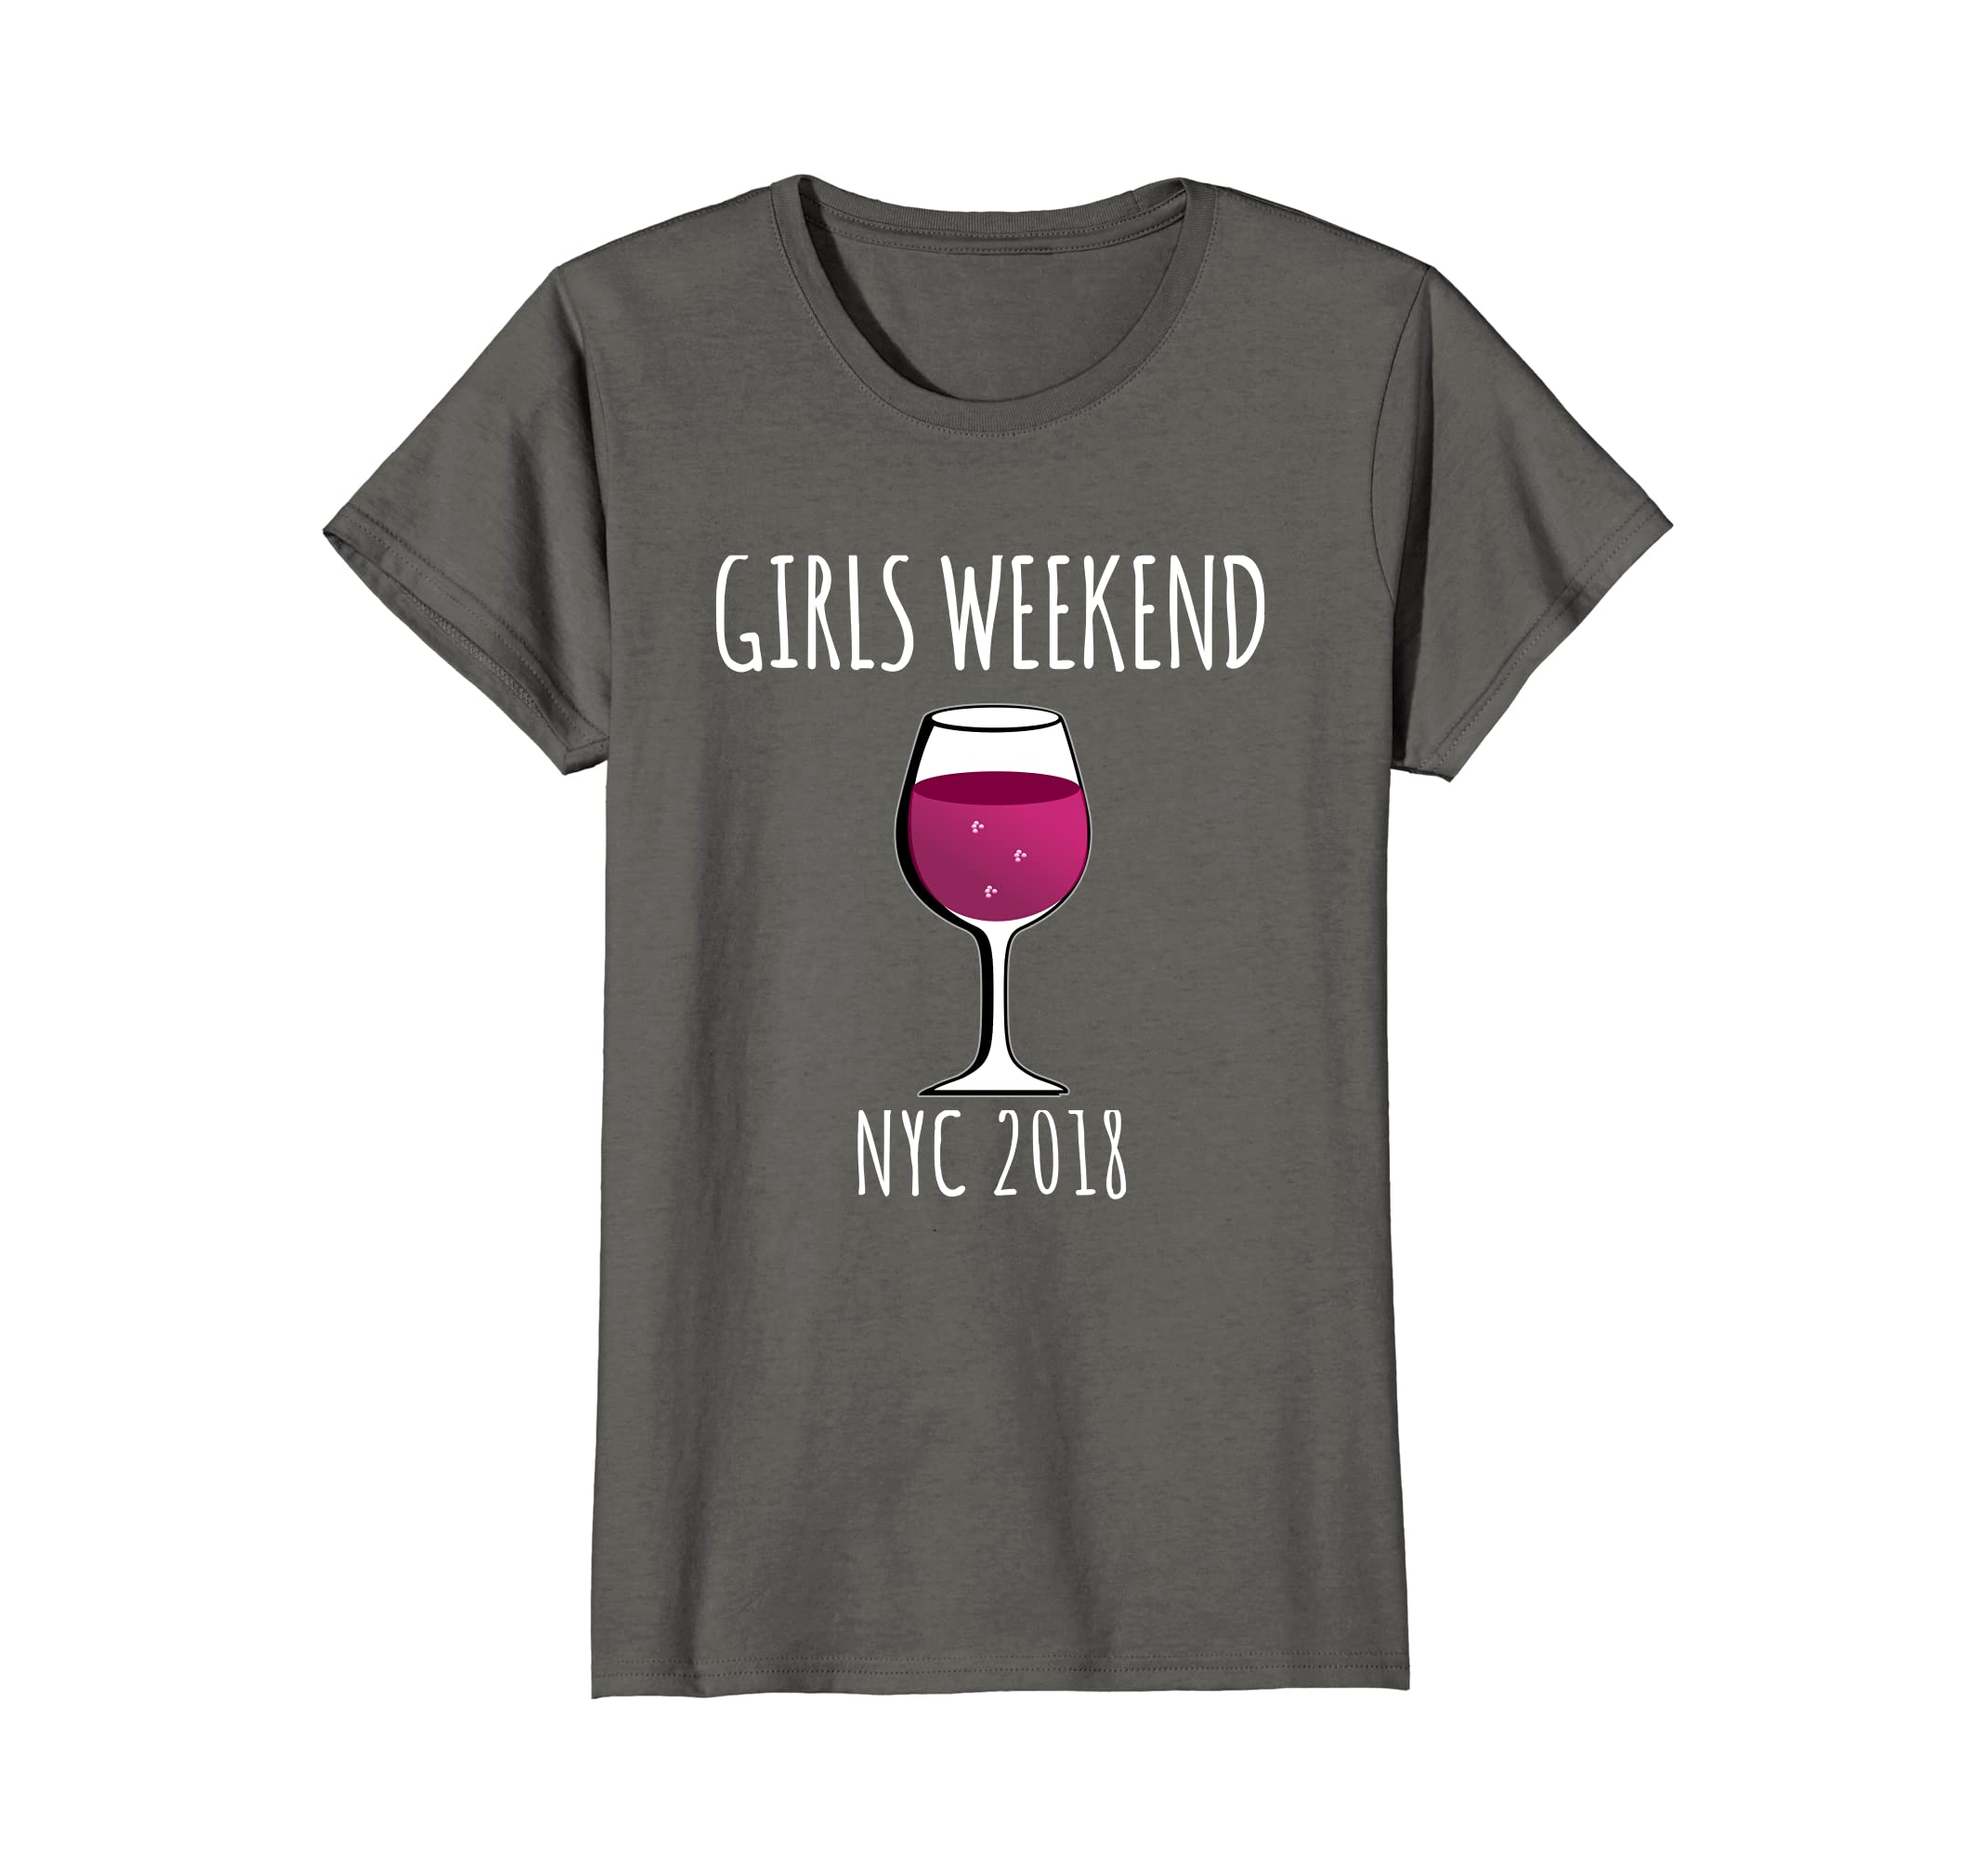 8f742a22 Amazon.com: Girls Weekend NYC 2018 Shirt Cute Ladies Trip Party T-Shirt:  Clothing